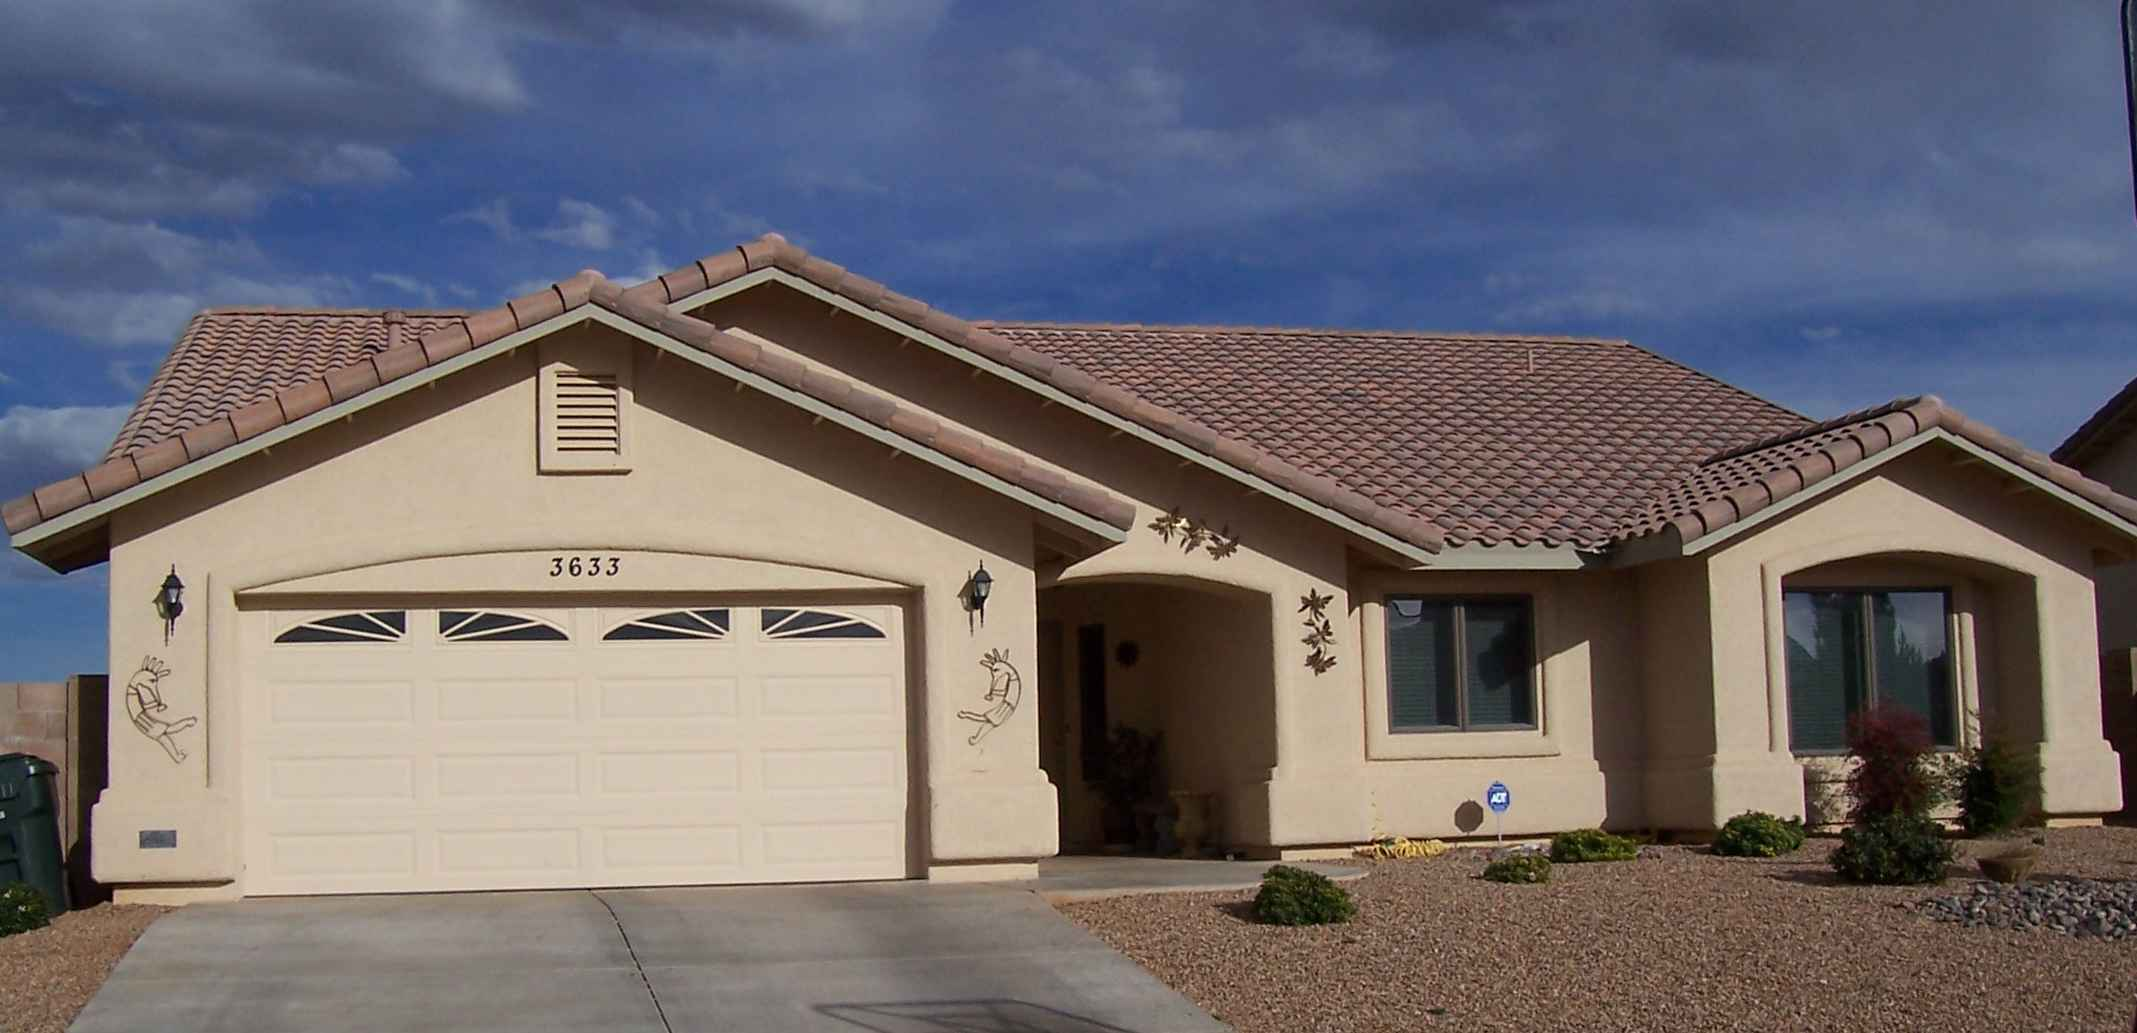 Home Sierra Vista Arizona Flat Fee Mls Listing